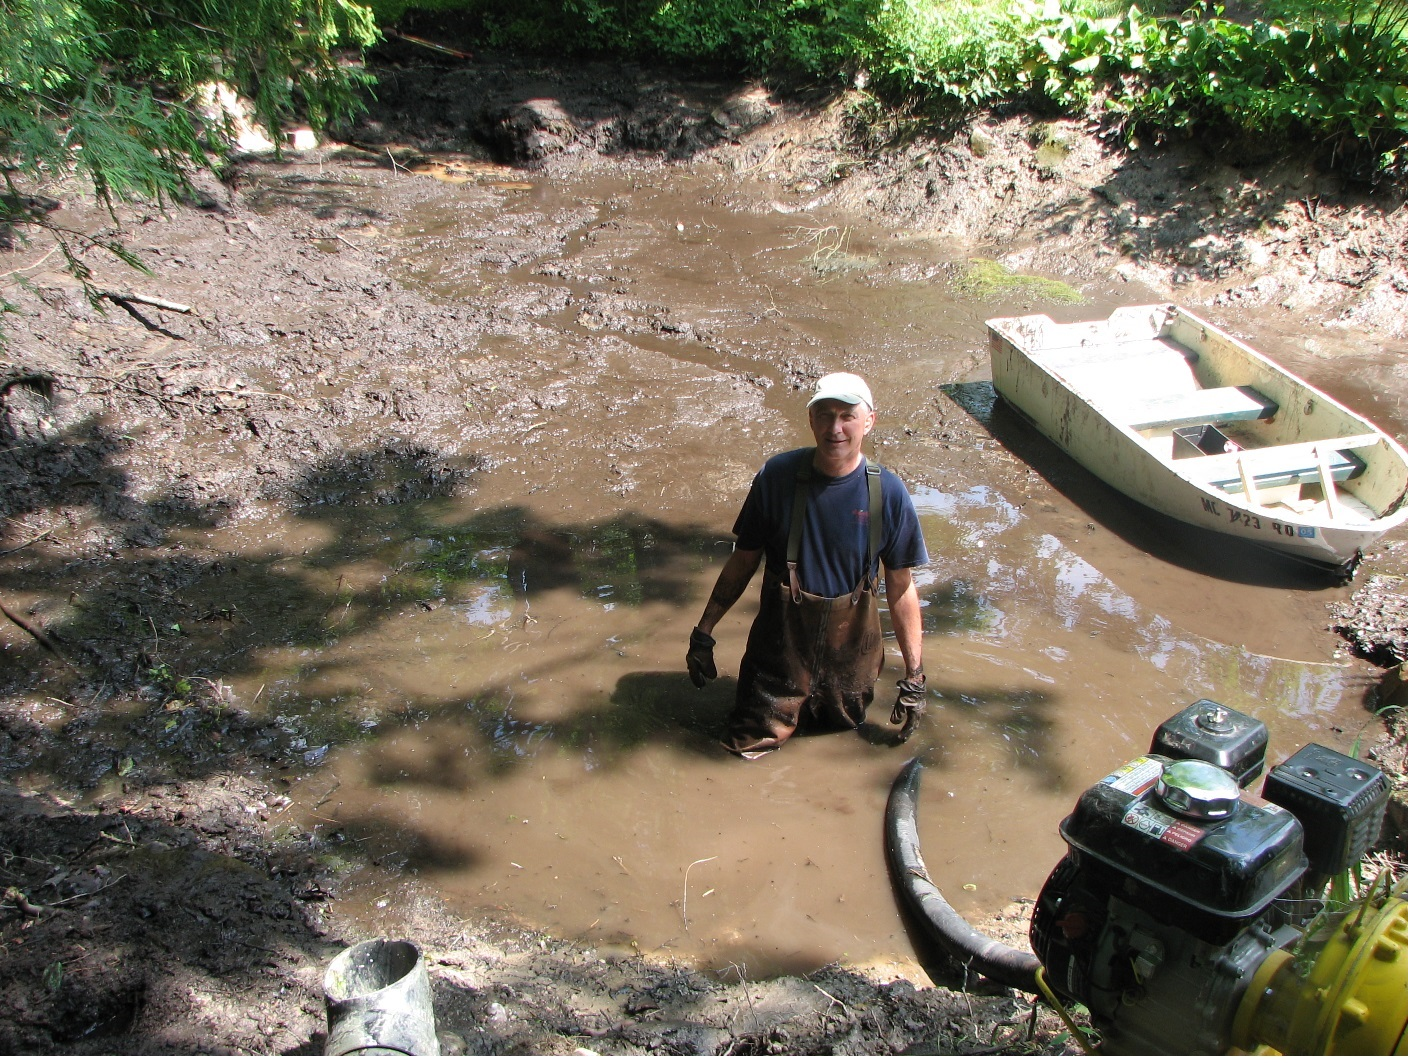 Let's talk muck    again  | Renovating a Pond or Lake? | Pond Boss Forum